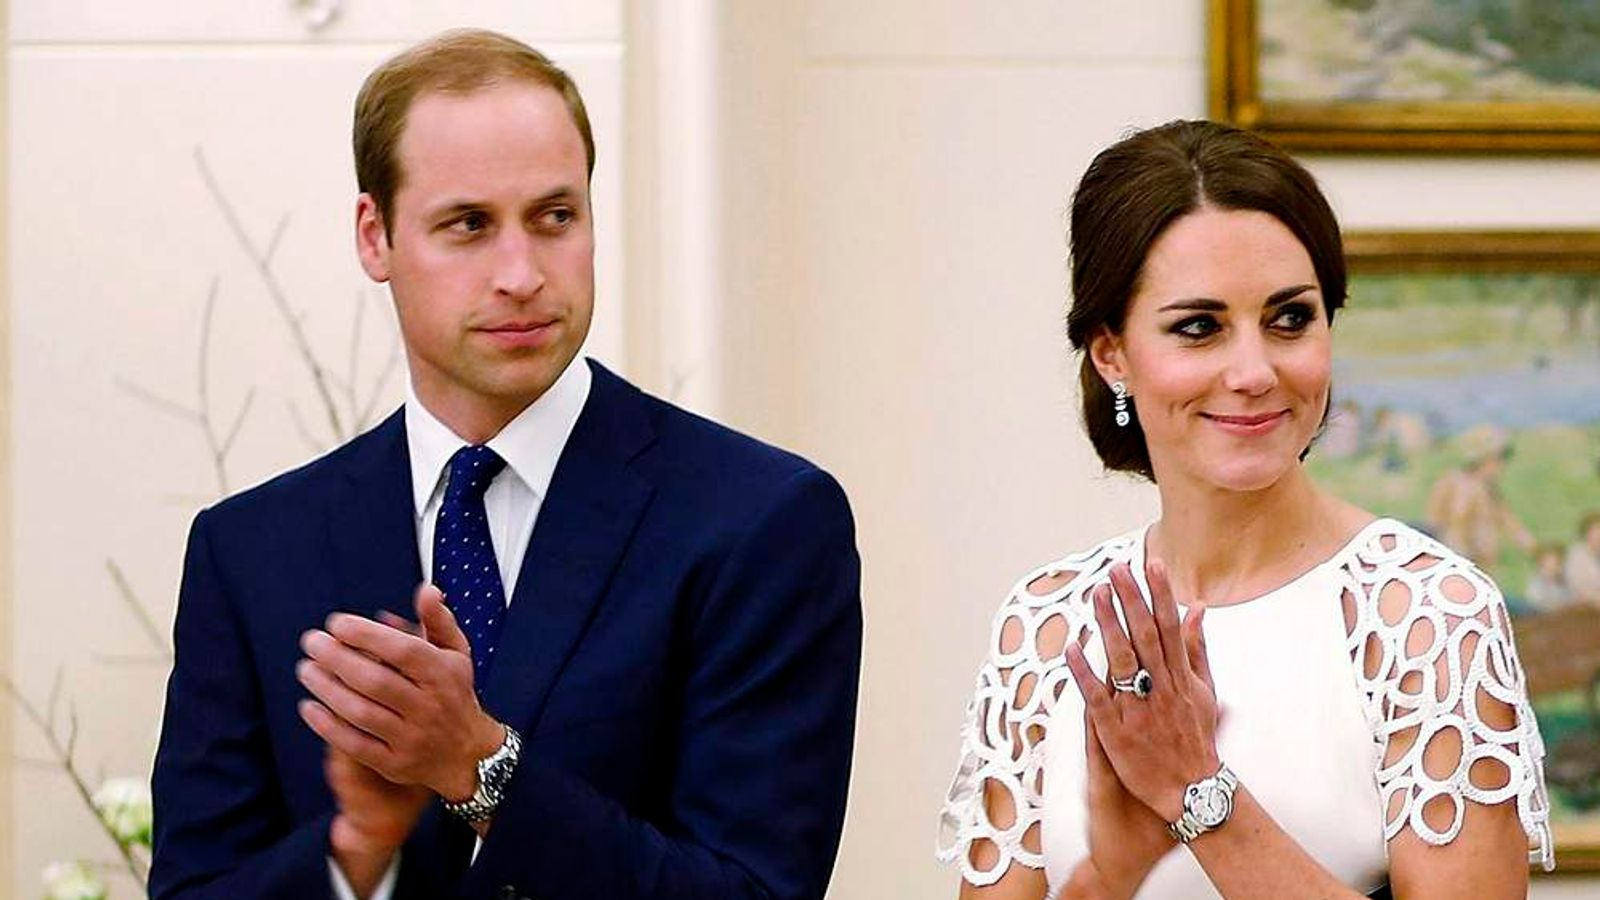 Britain's Prince William and Catherine, Duchess of Cambridge, attend a reception at Government House in Canberra